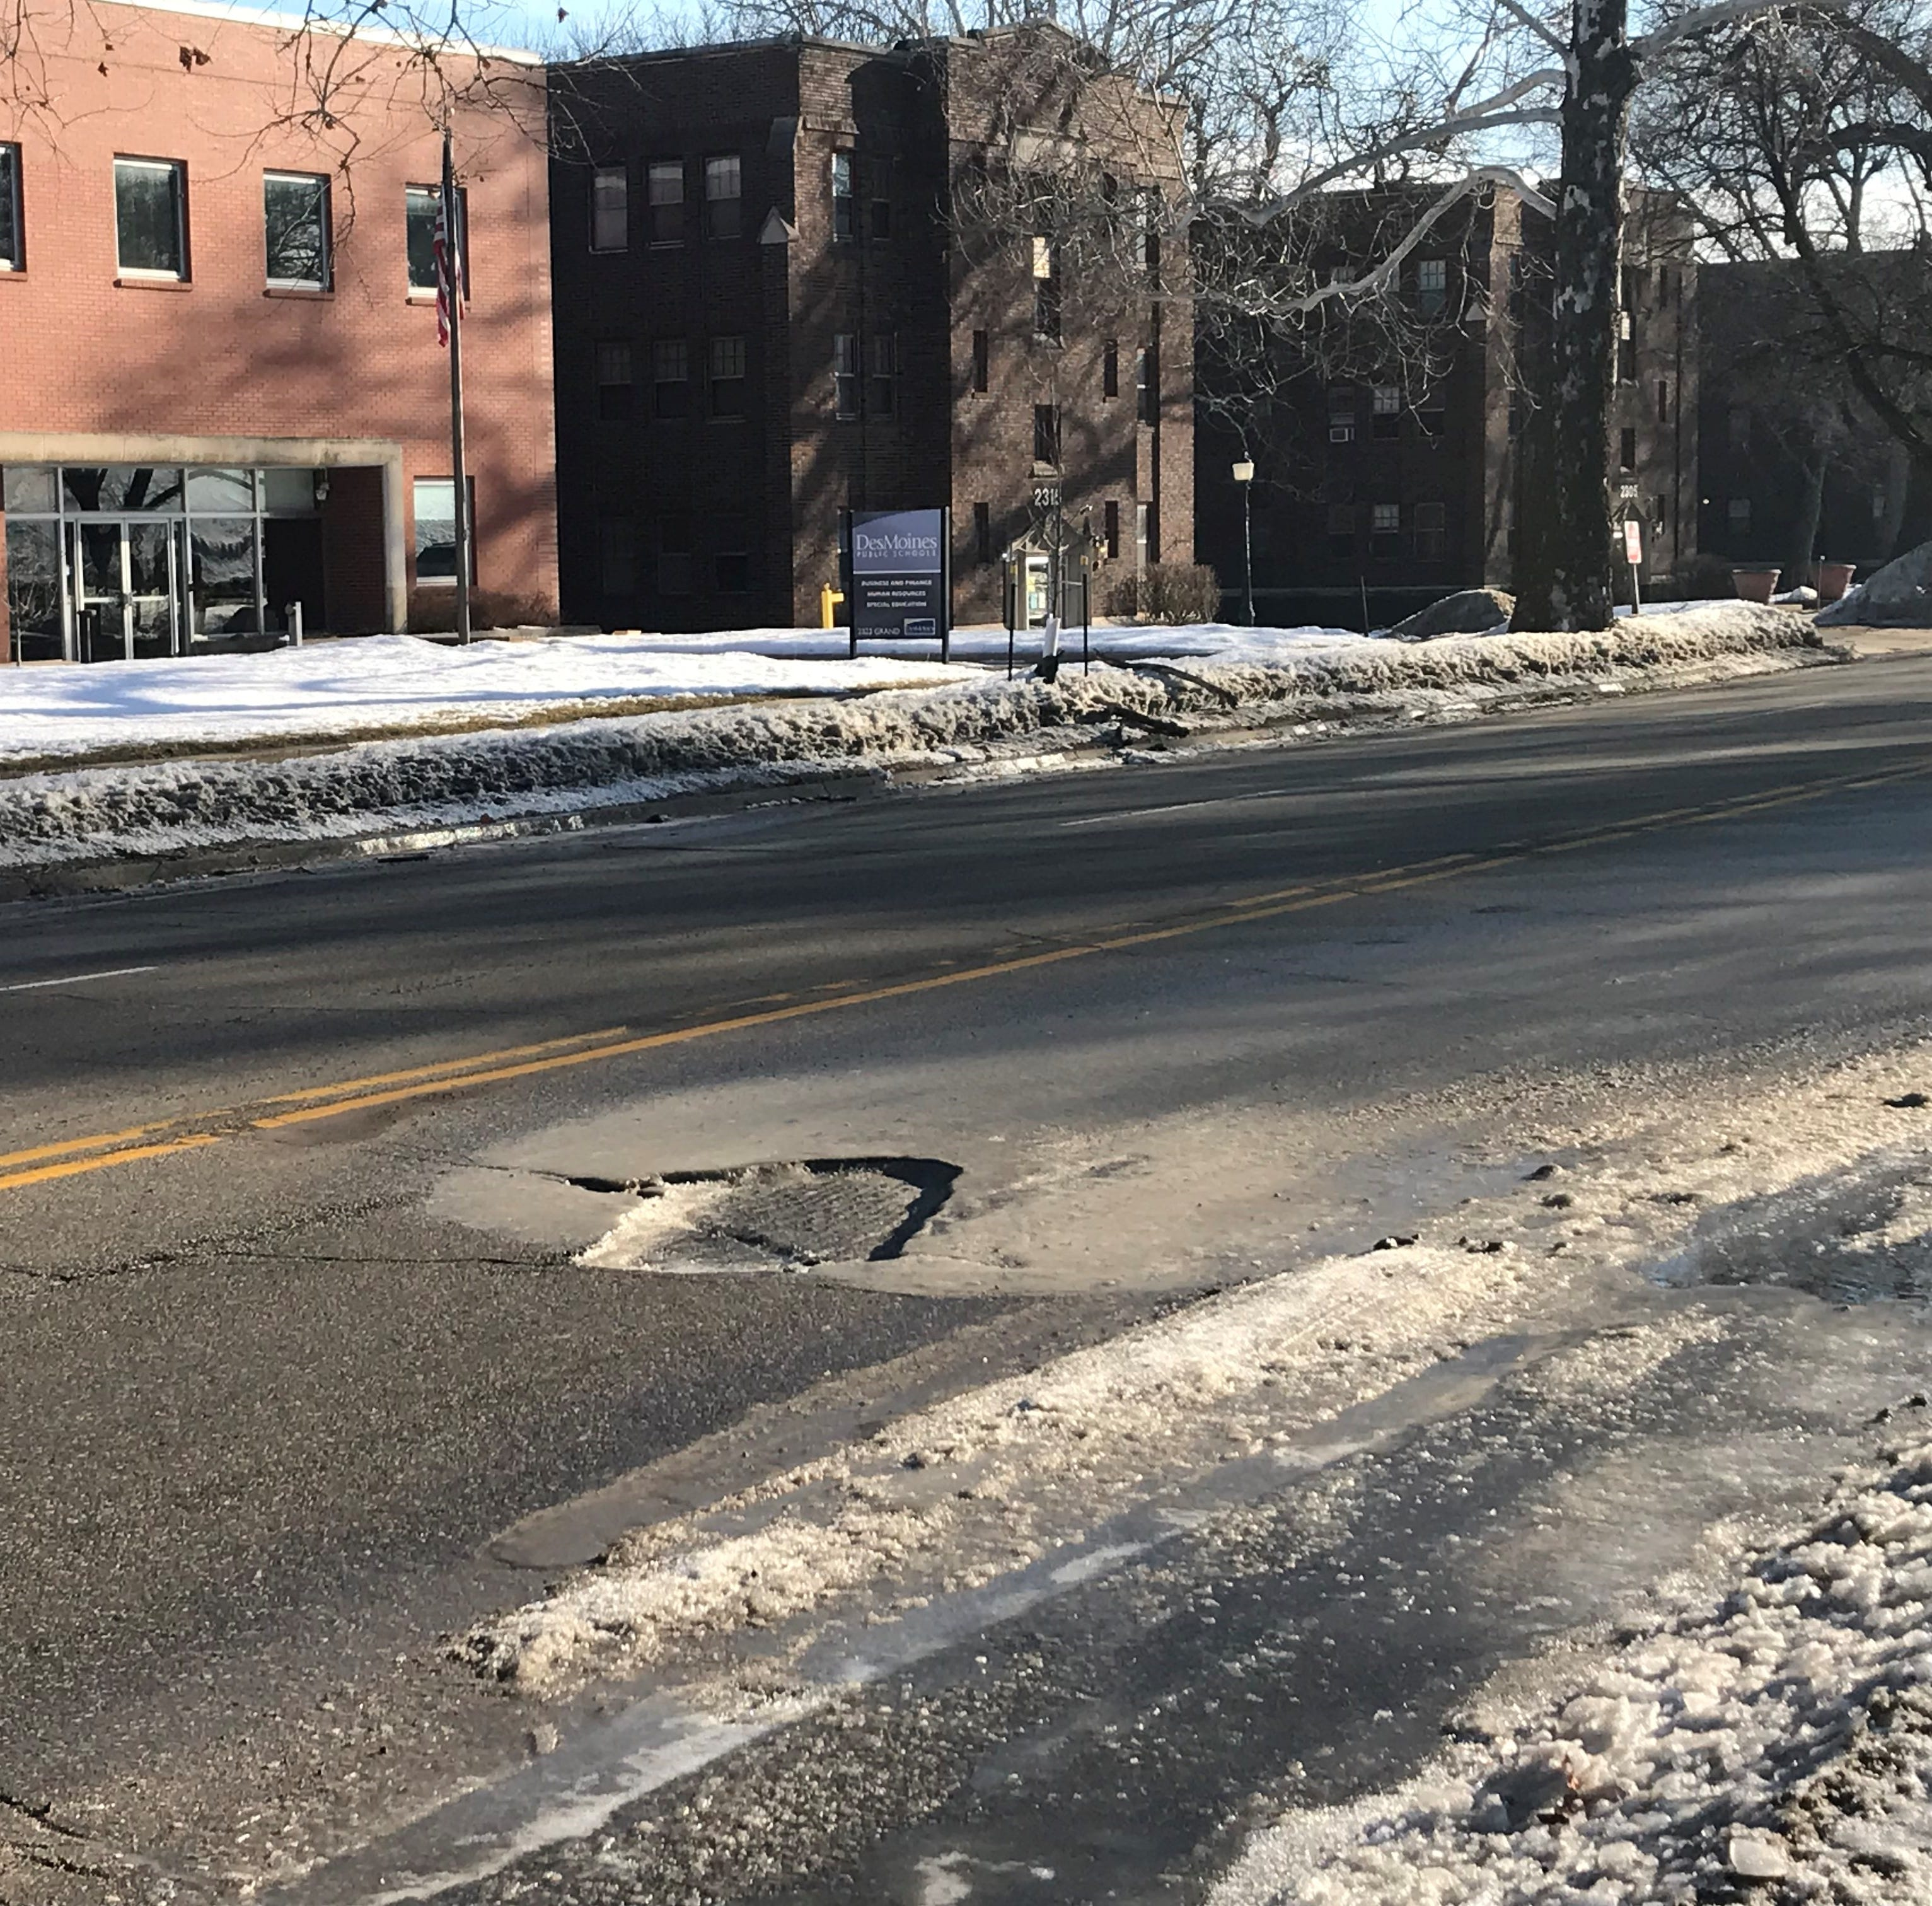 After more than 1,000 complaints, Des Moines to nearly triple efforts to fill potholes